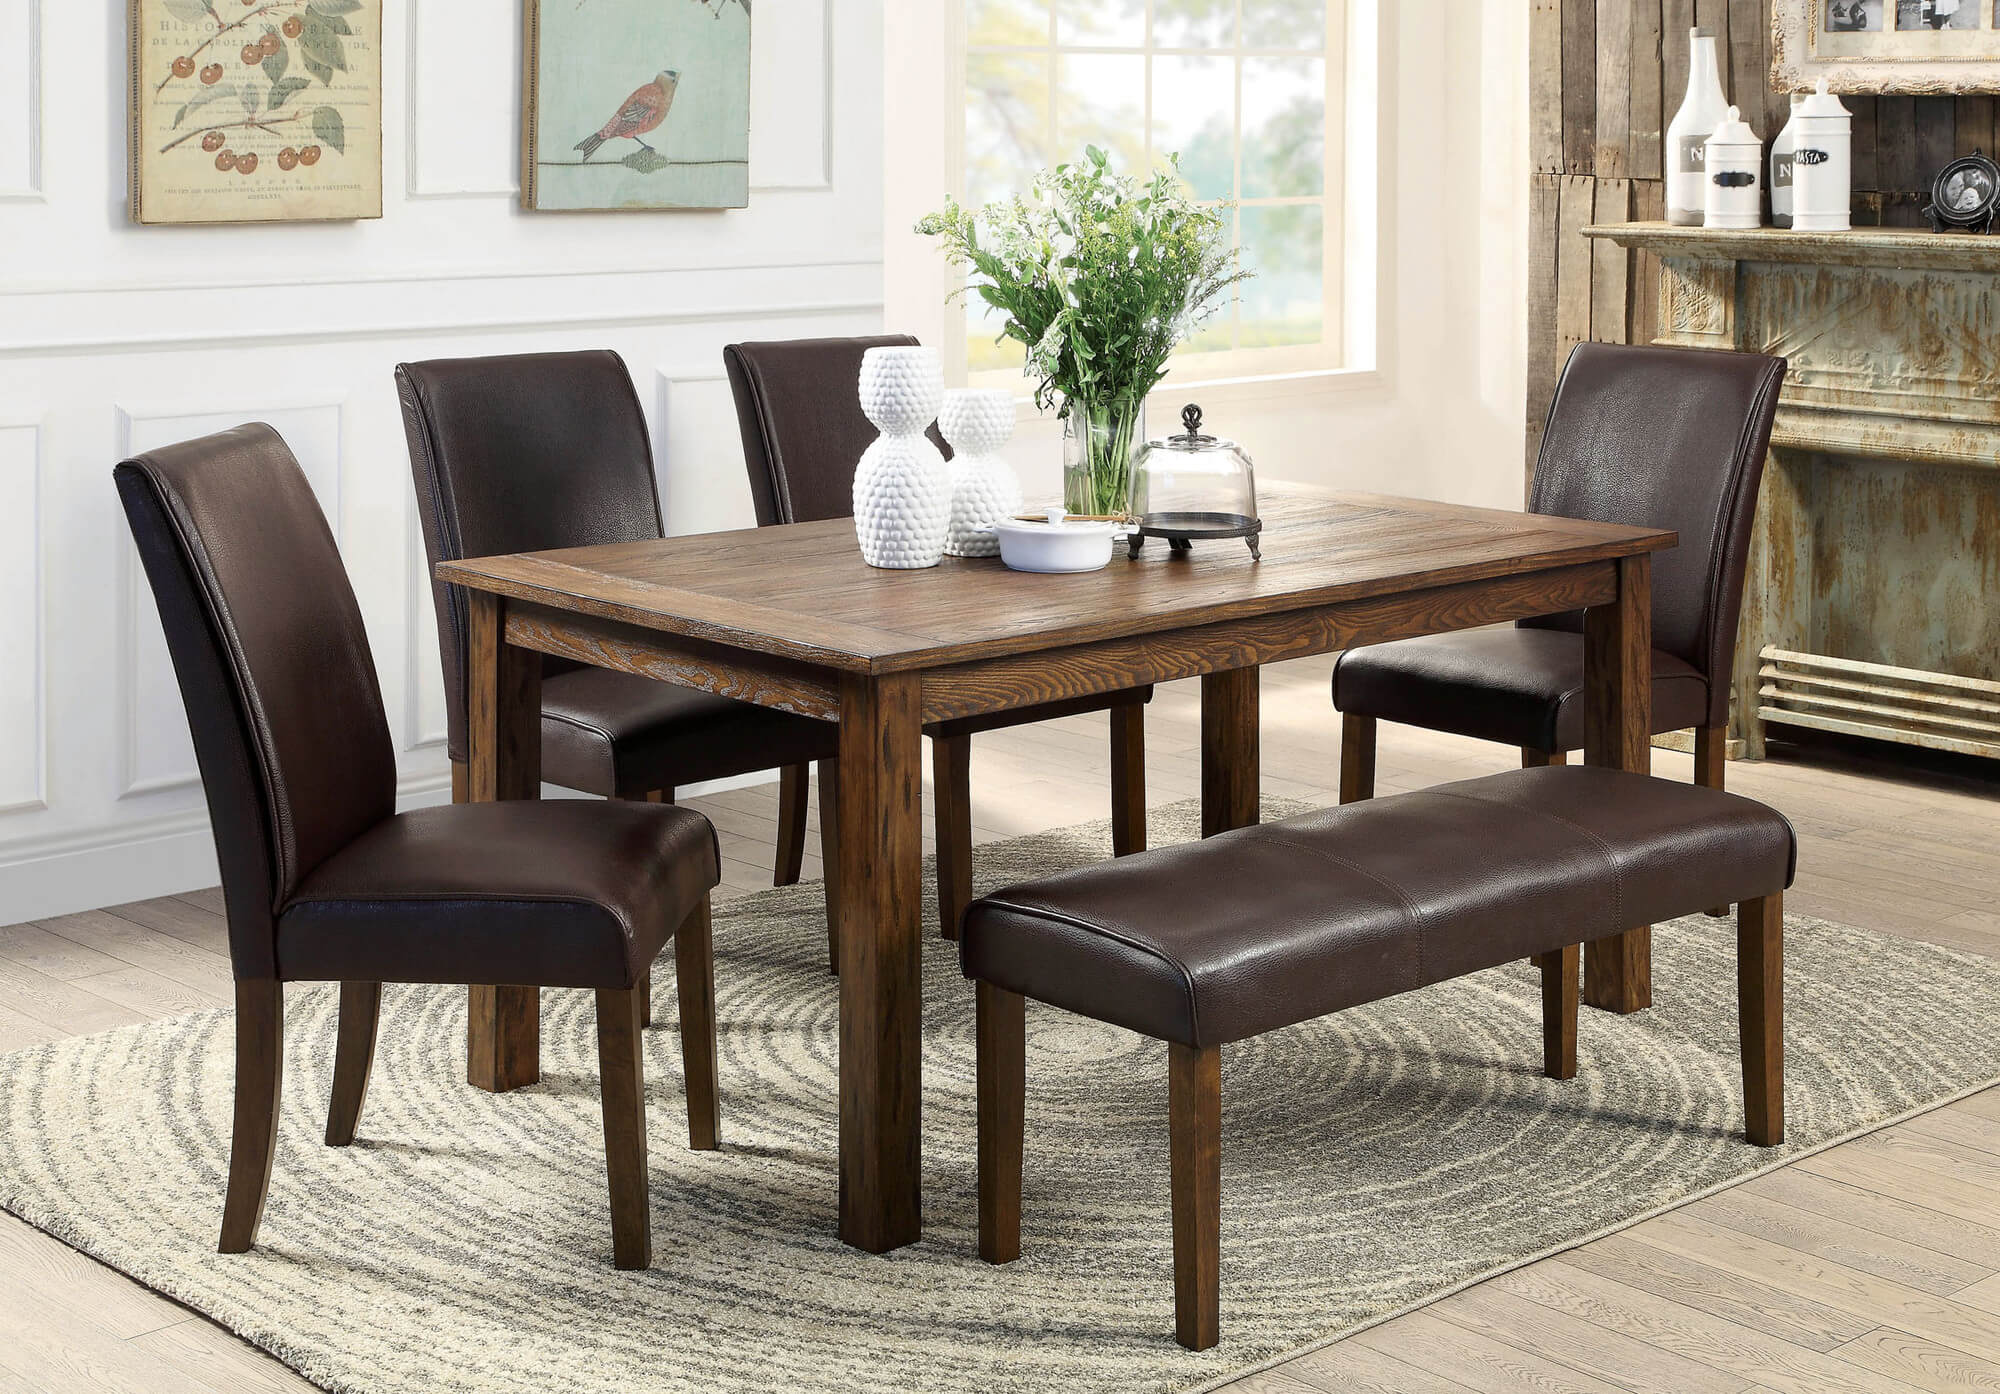 Elegant Hereu0027s a rustic rectangle dining table with fully cushioned chairs and small dining room sets